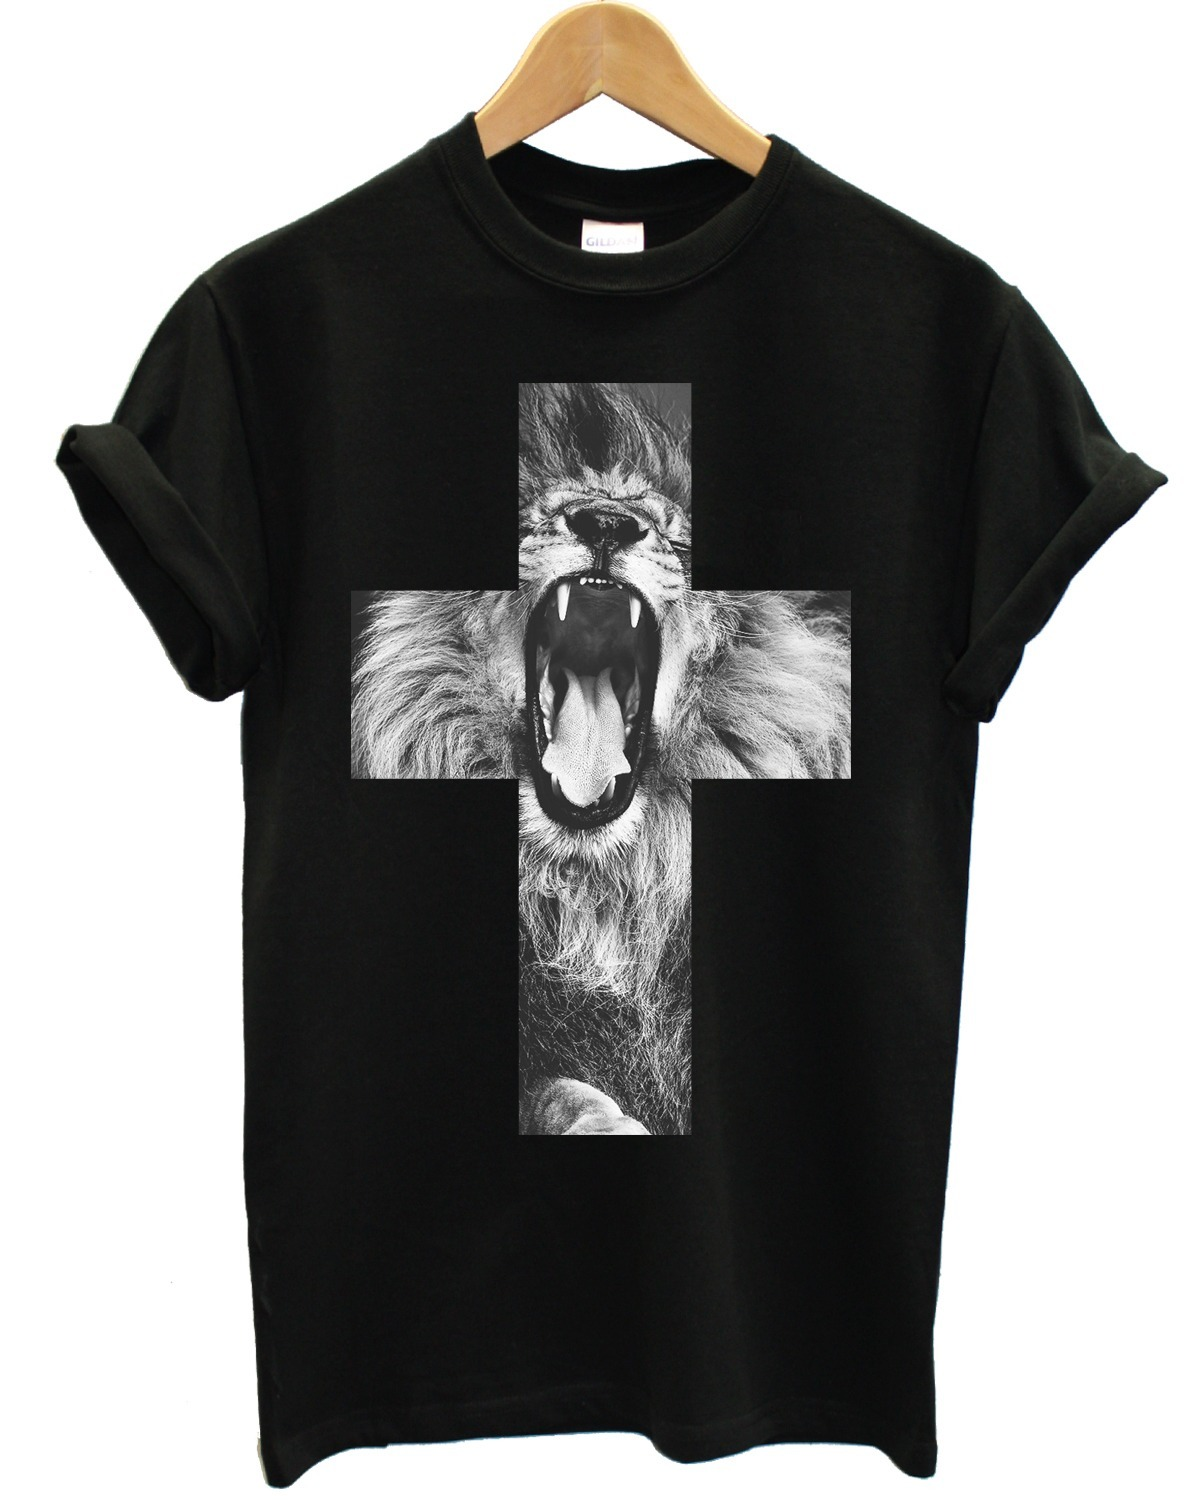 ultimatebeauties:  RELEASE YOUR INNER BEAST! SHOP FULL FELINE PRINT COLLECTION HERE→